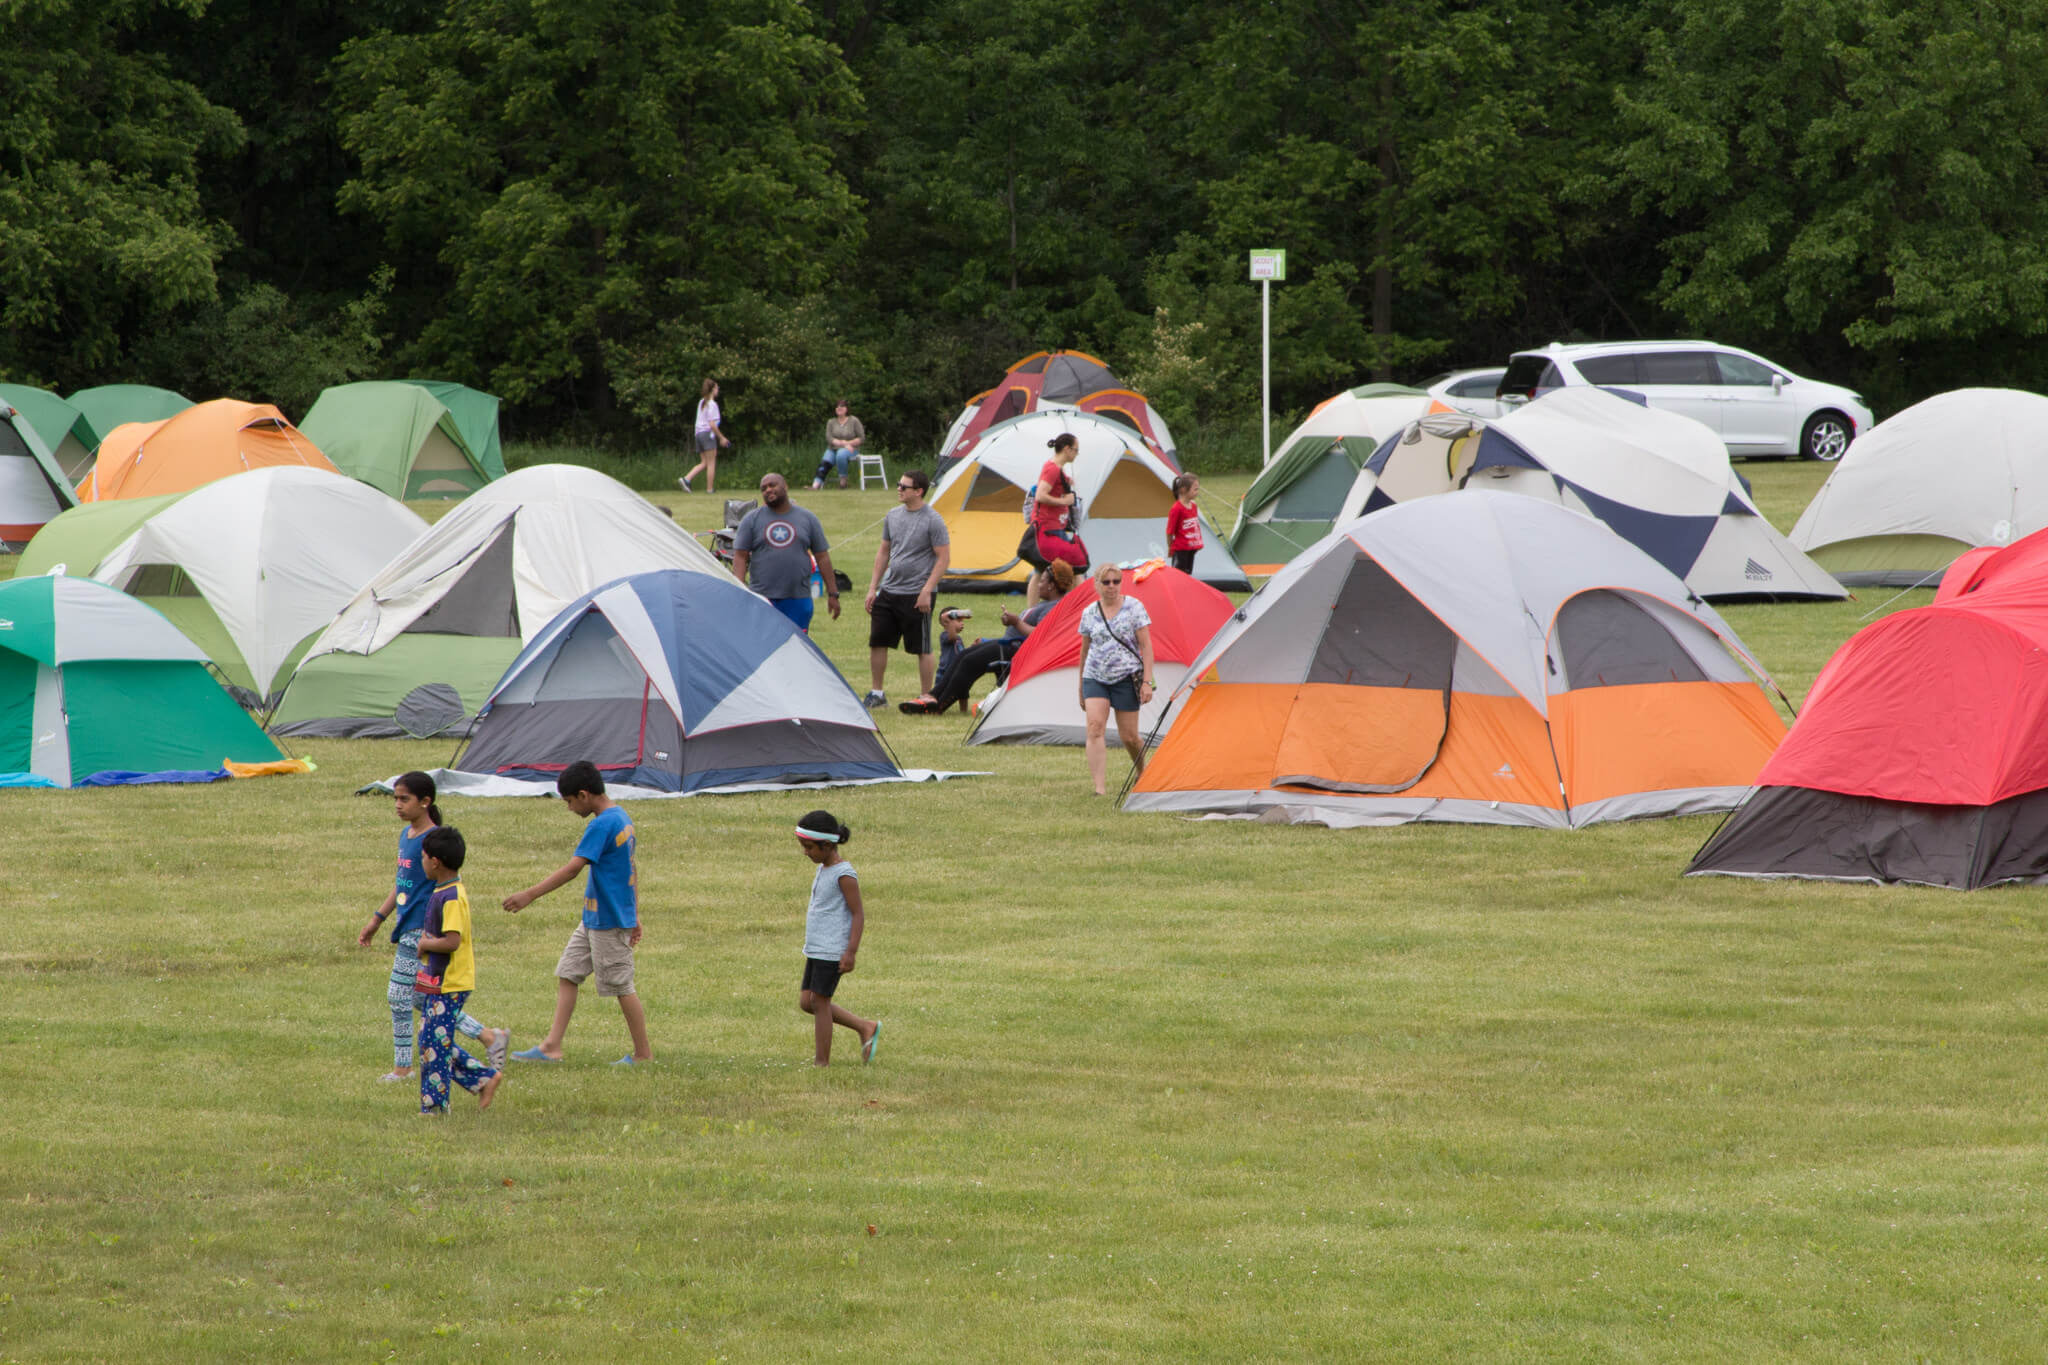 The Great Campout In Farmington Hills At Heritage Park Returns For 2021